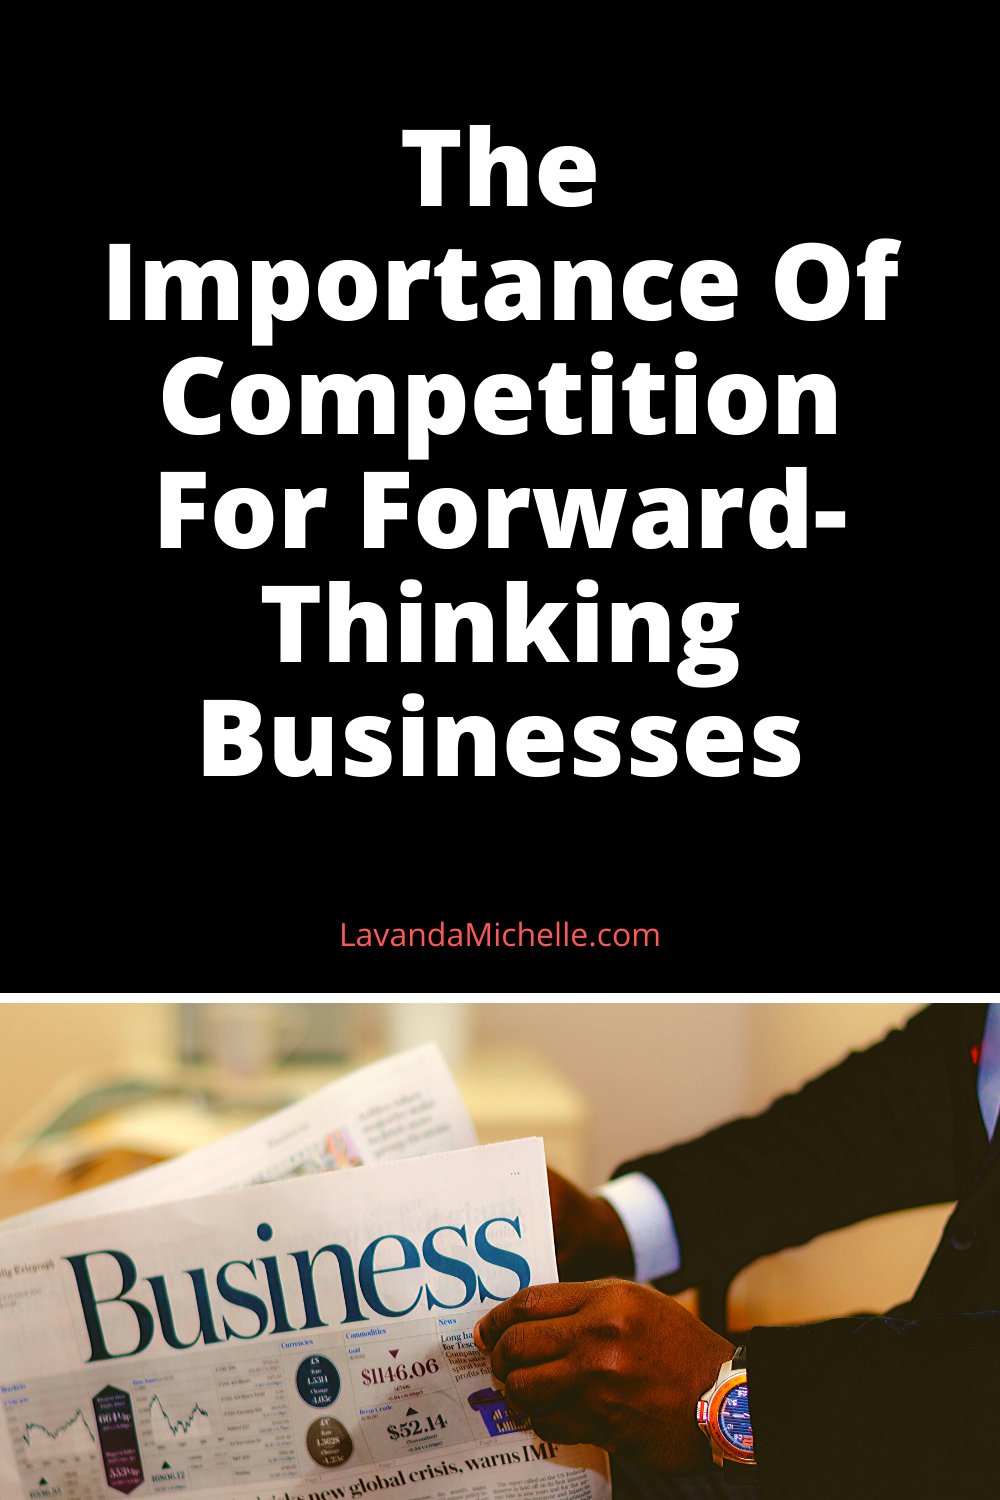 The Importance Of Competition For Forward-Thinking Businesses (1)